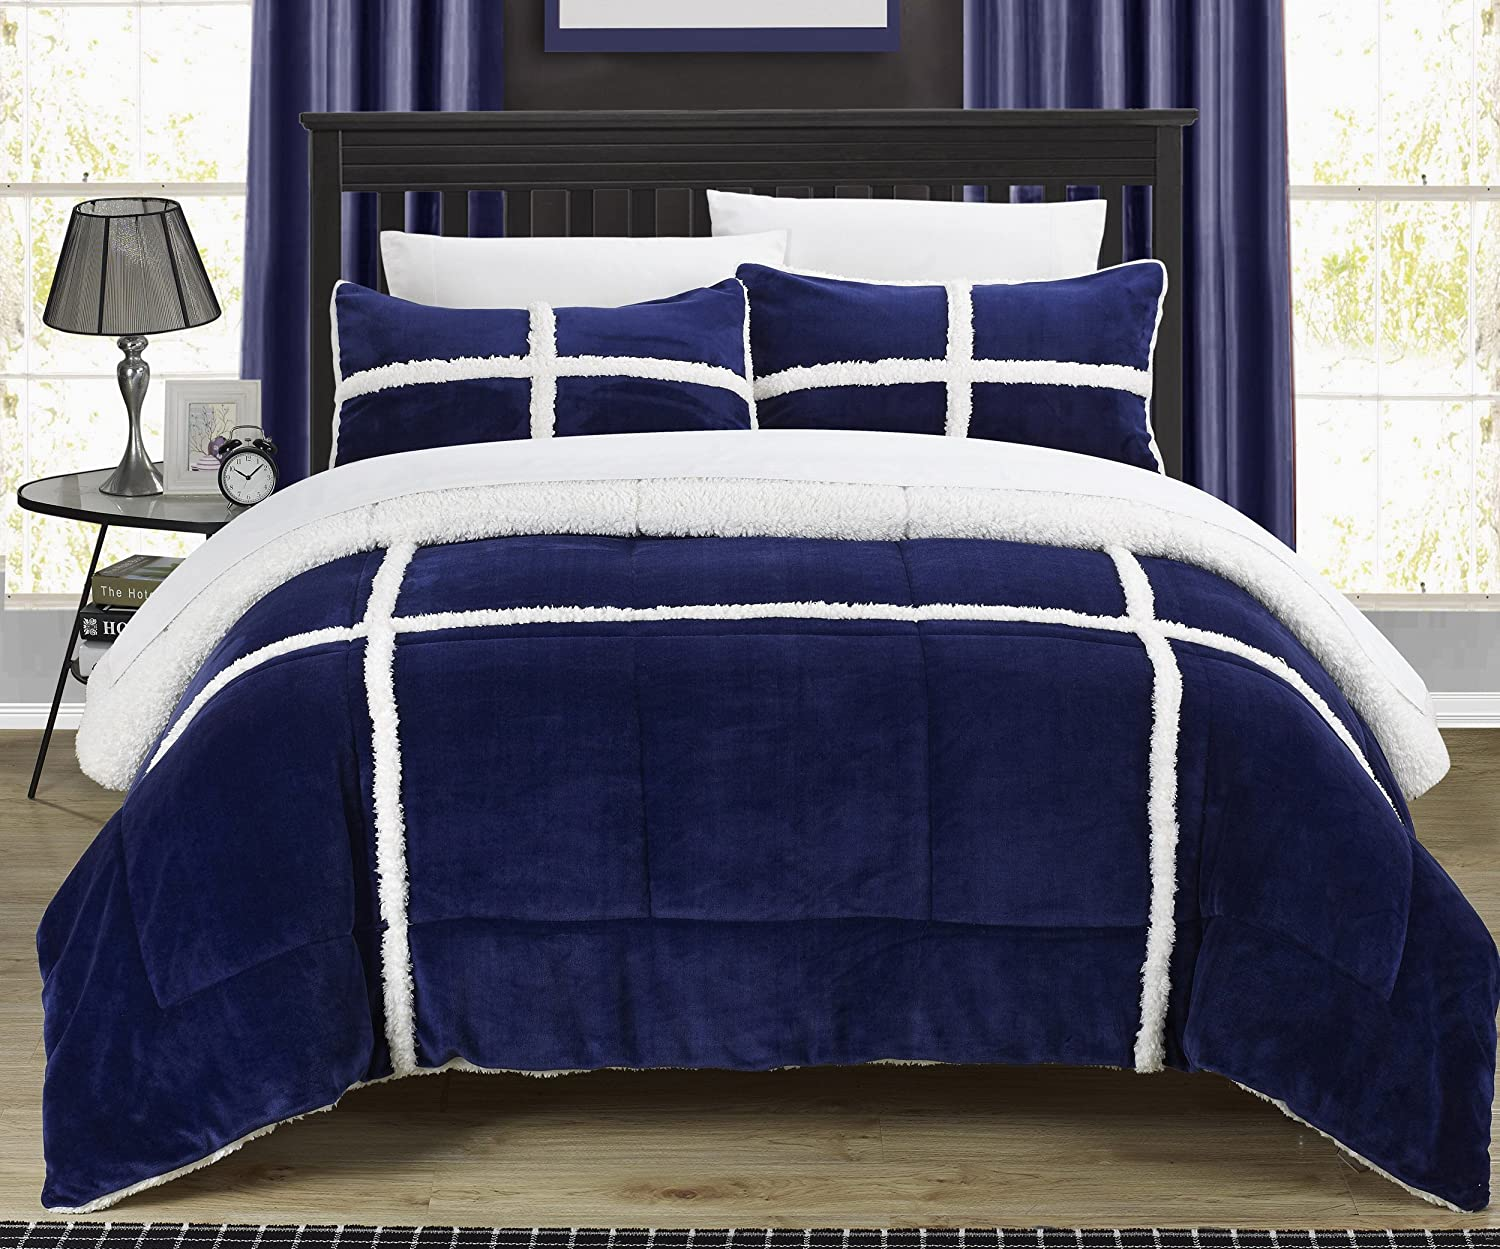 Chic Home 3 Piece Chloe Sherpa Comforter Set, King, Navy